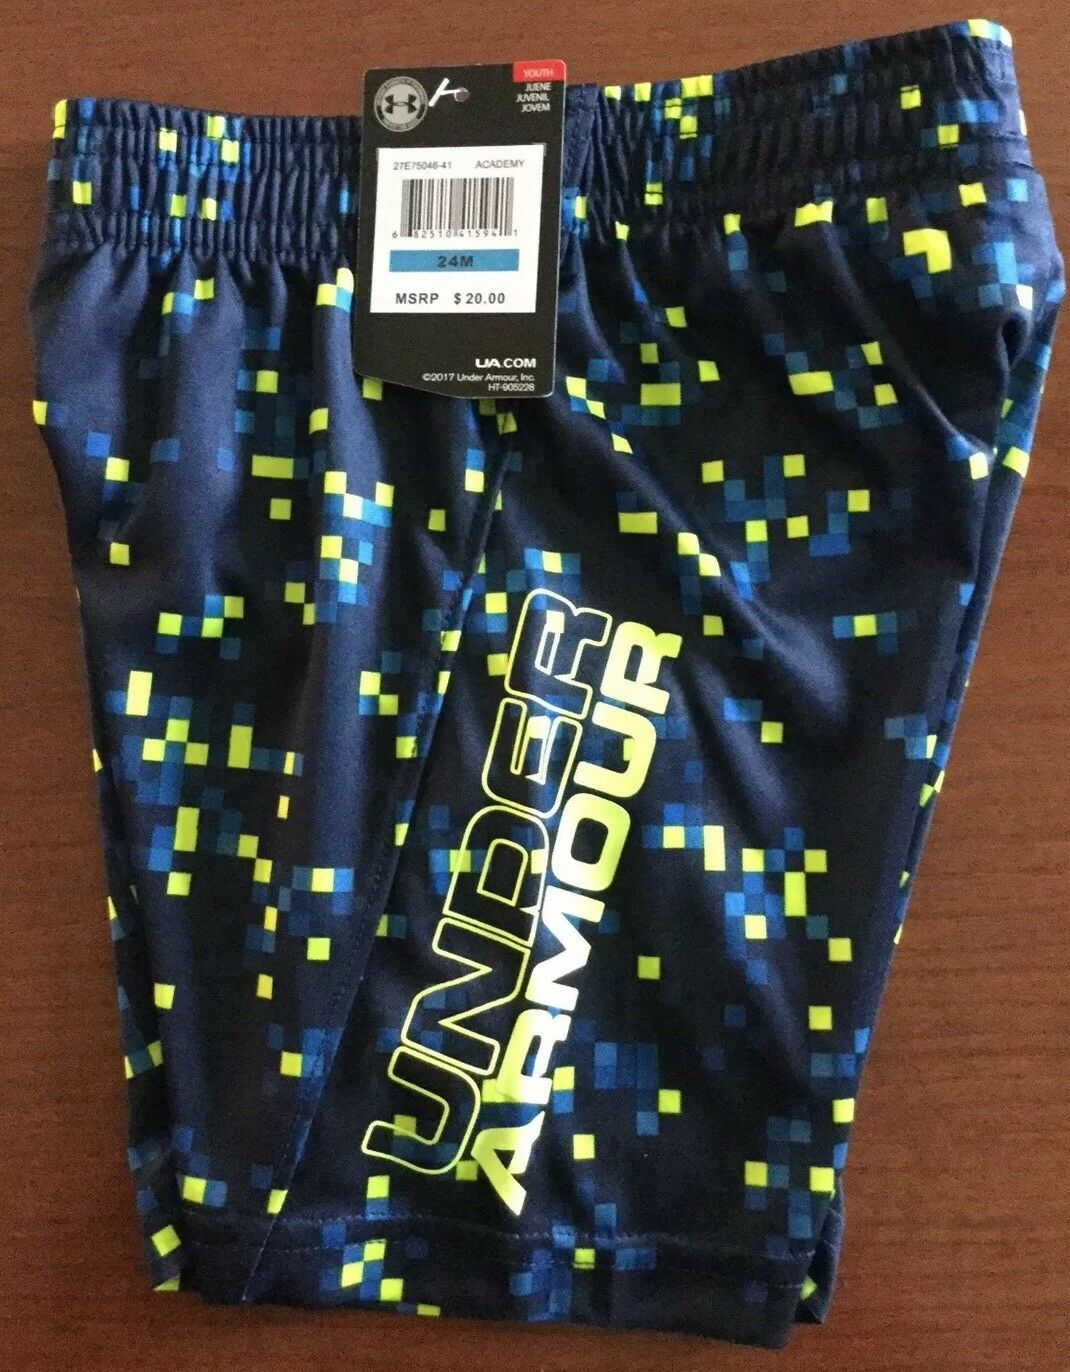 NWT UNDER ARMOUR BOYS SHORTS SIZE 24 MONTHS BLUE PIXEL//DIGITAL PATTERN MSRP $20